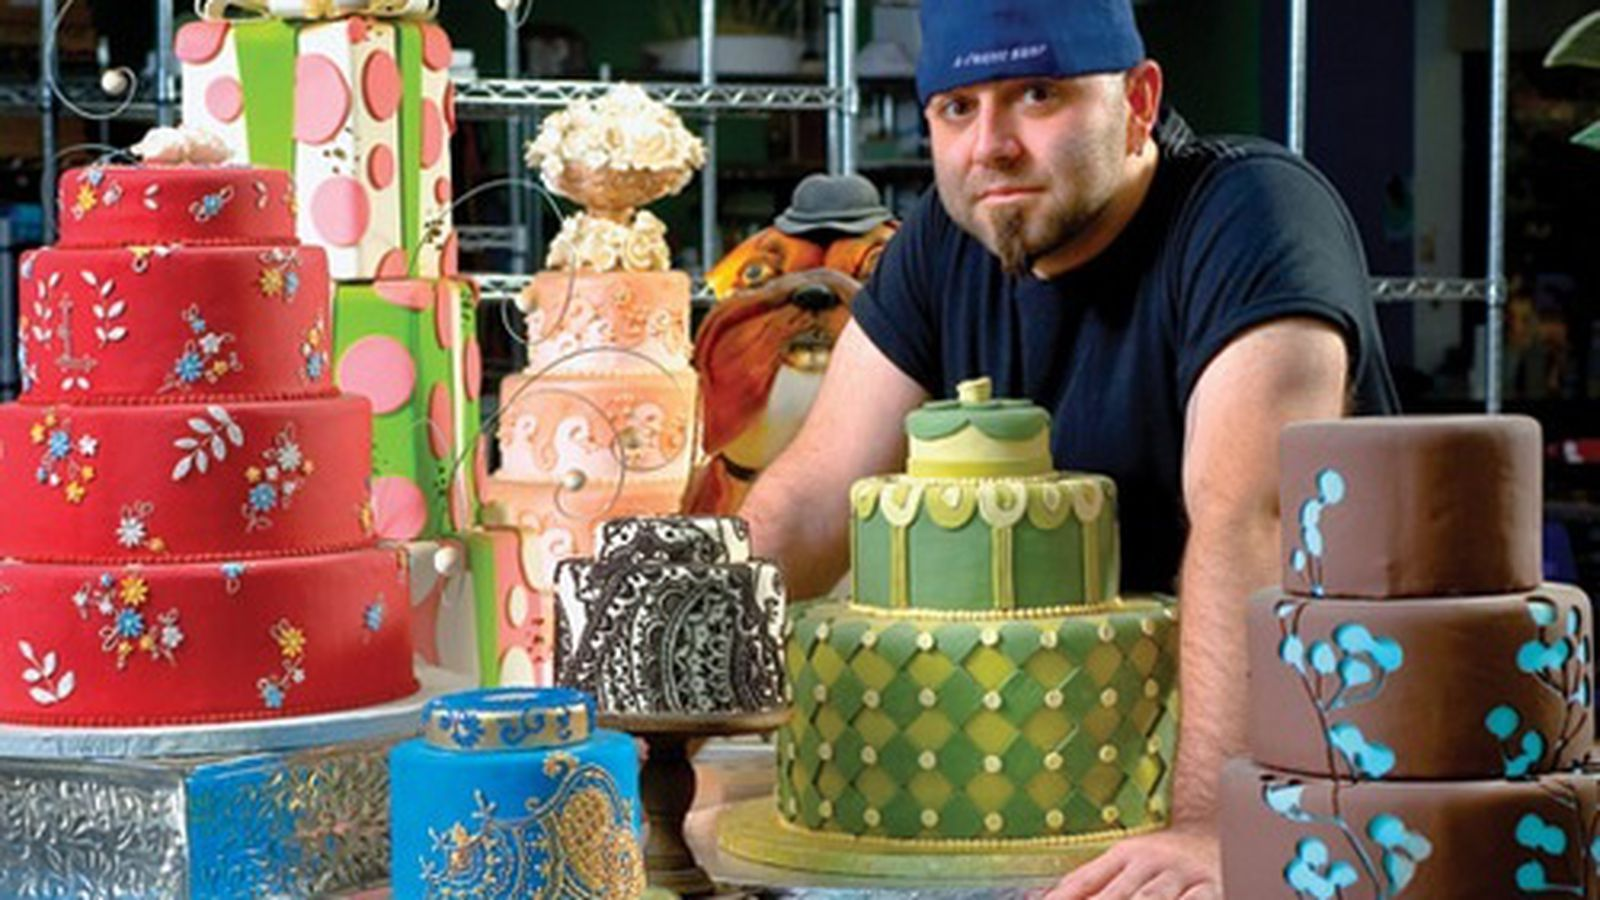 Toes Ace of Cakes Duff Goldman